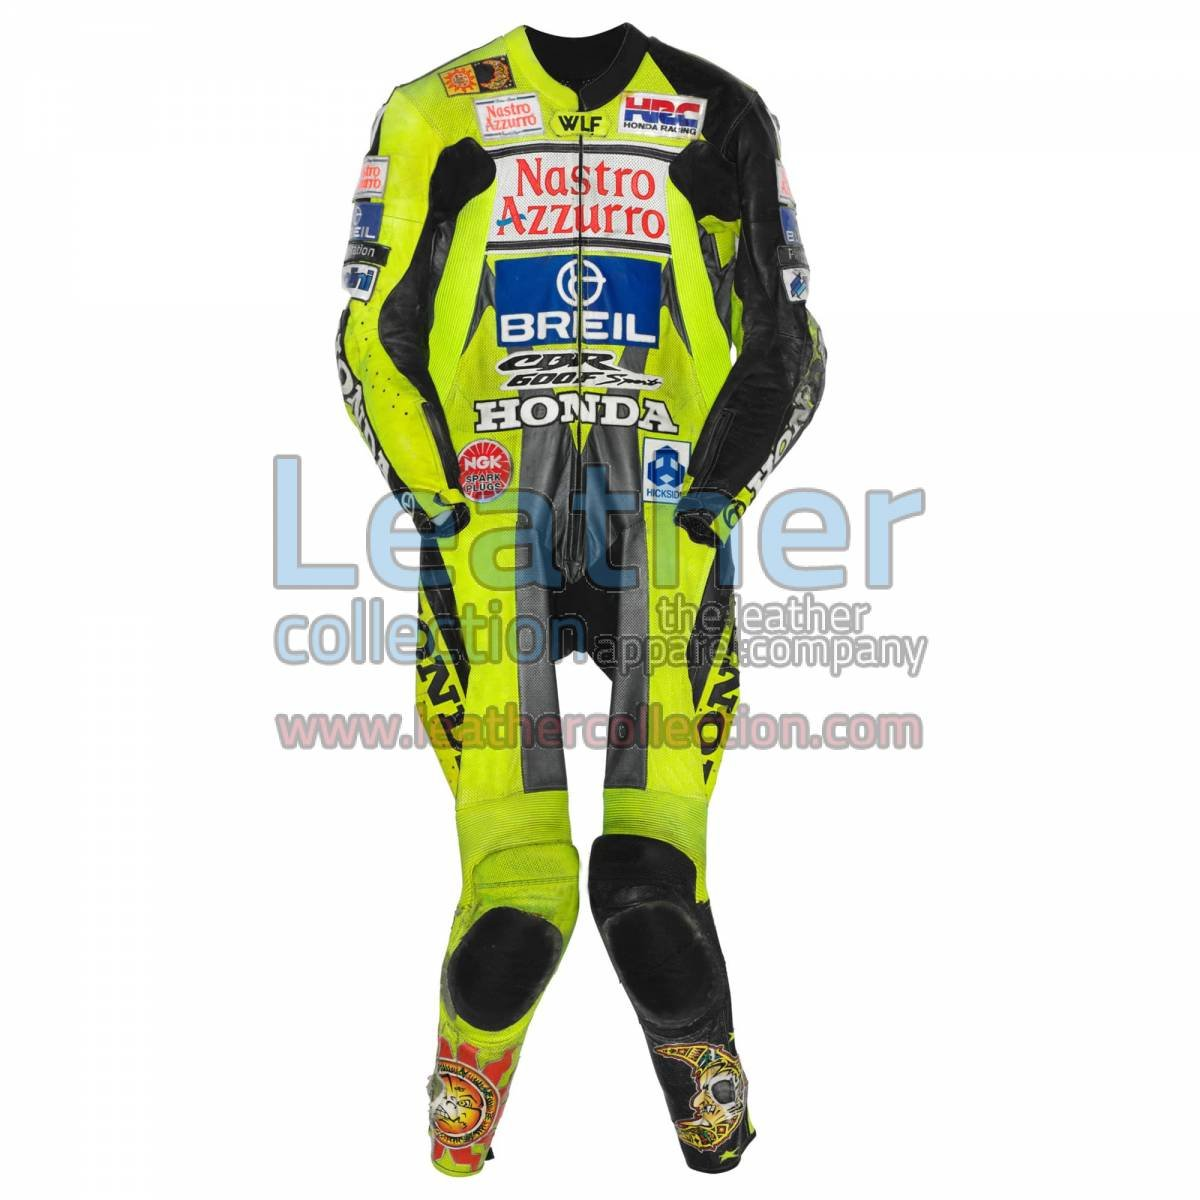 Valentino Rossi Honda CBR 600 GP 2000 Leather Suit